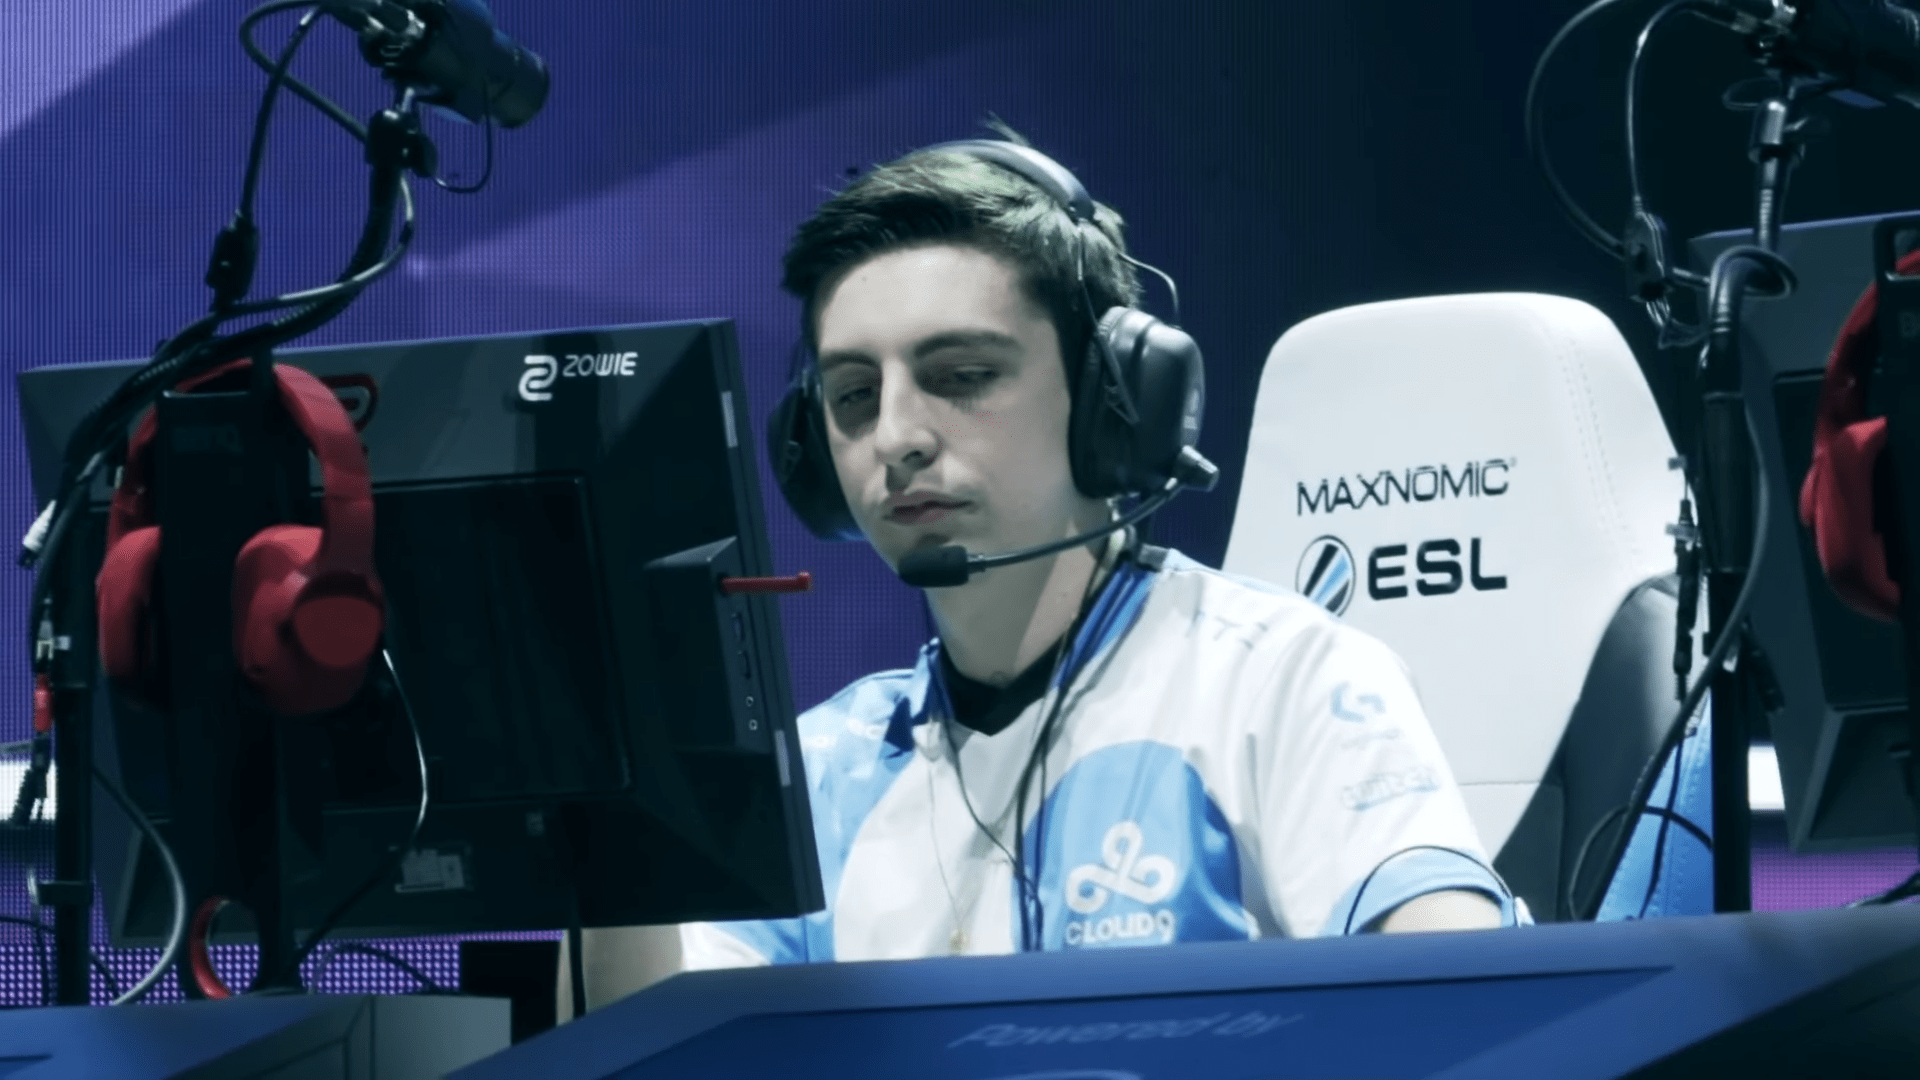 Shroud Returns To Twitch With 500,000 Viewers And 13,000 Subscribers In The First Minutes Of His Comeback Stream